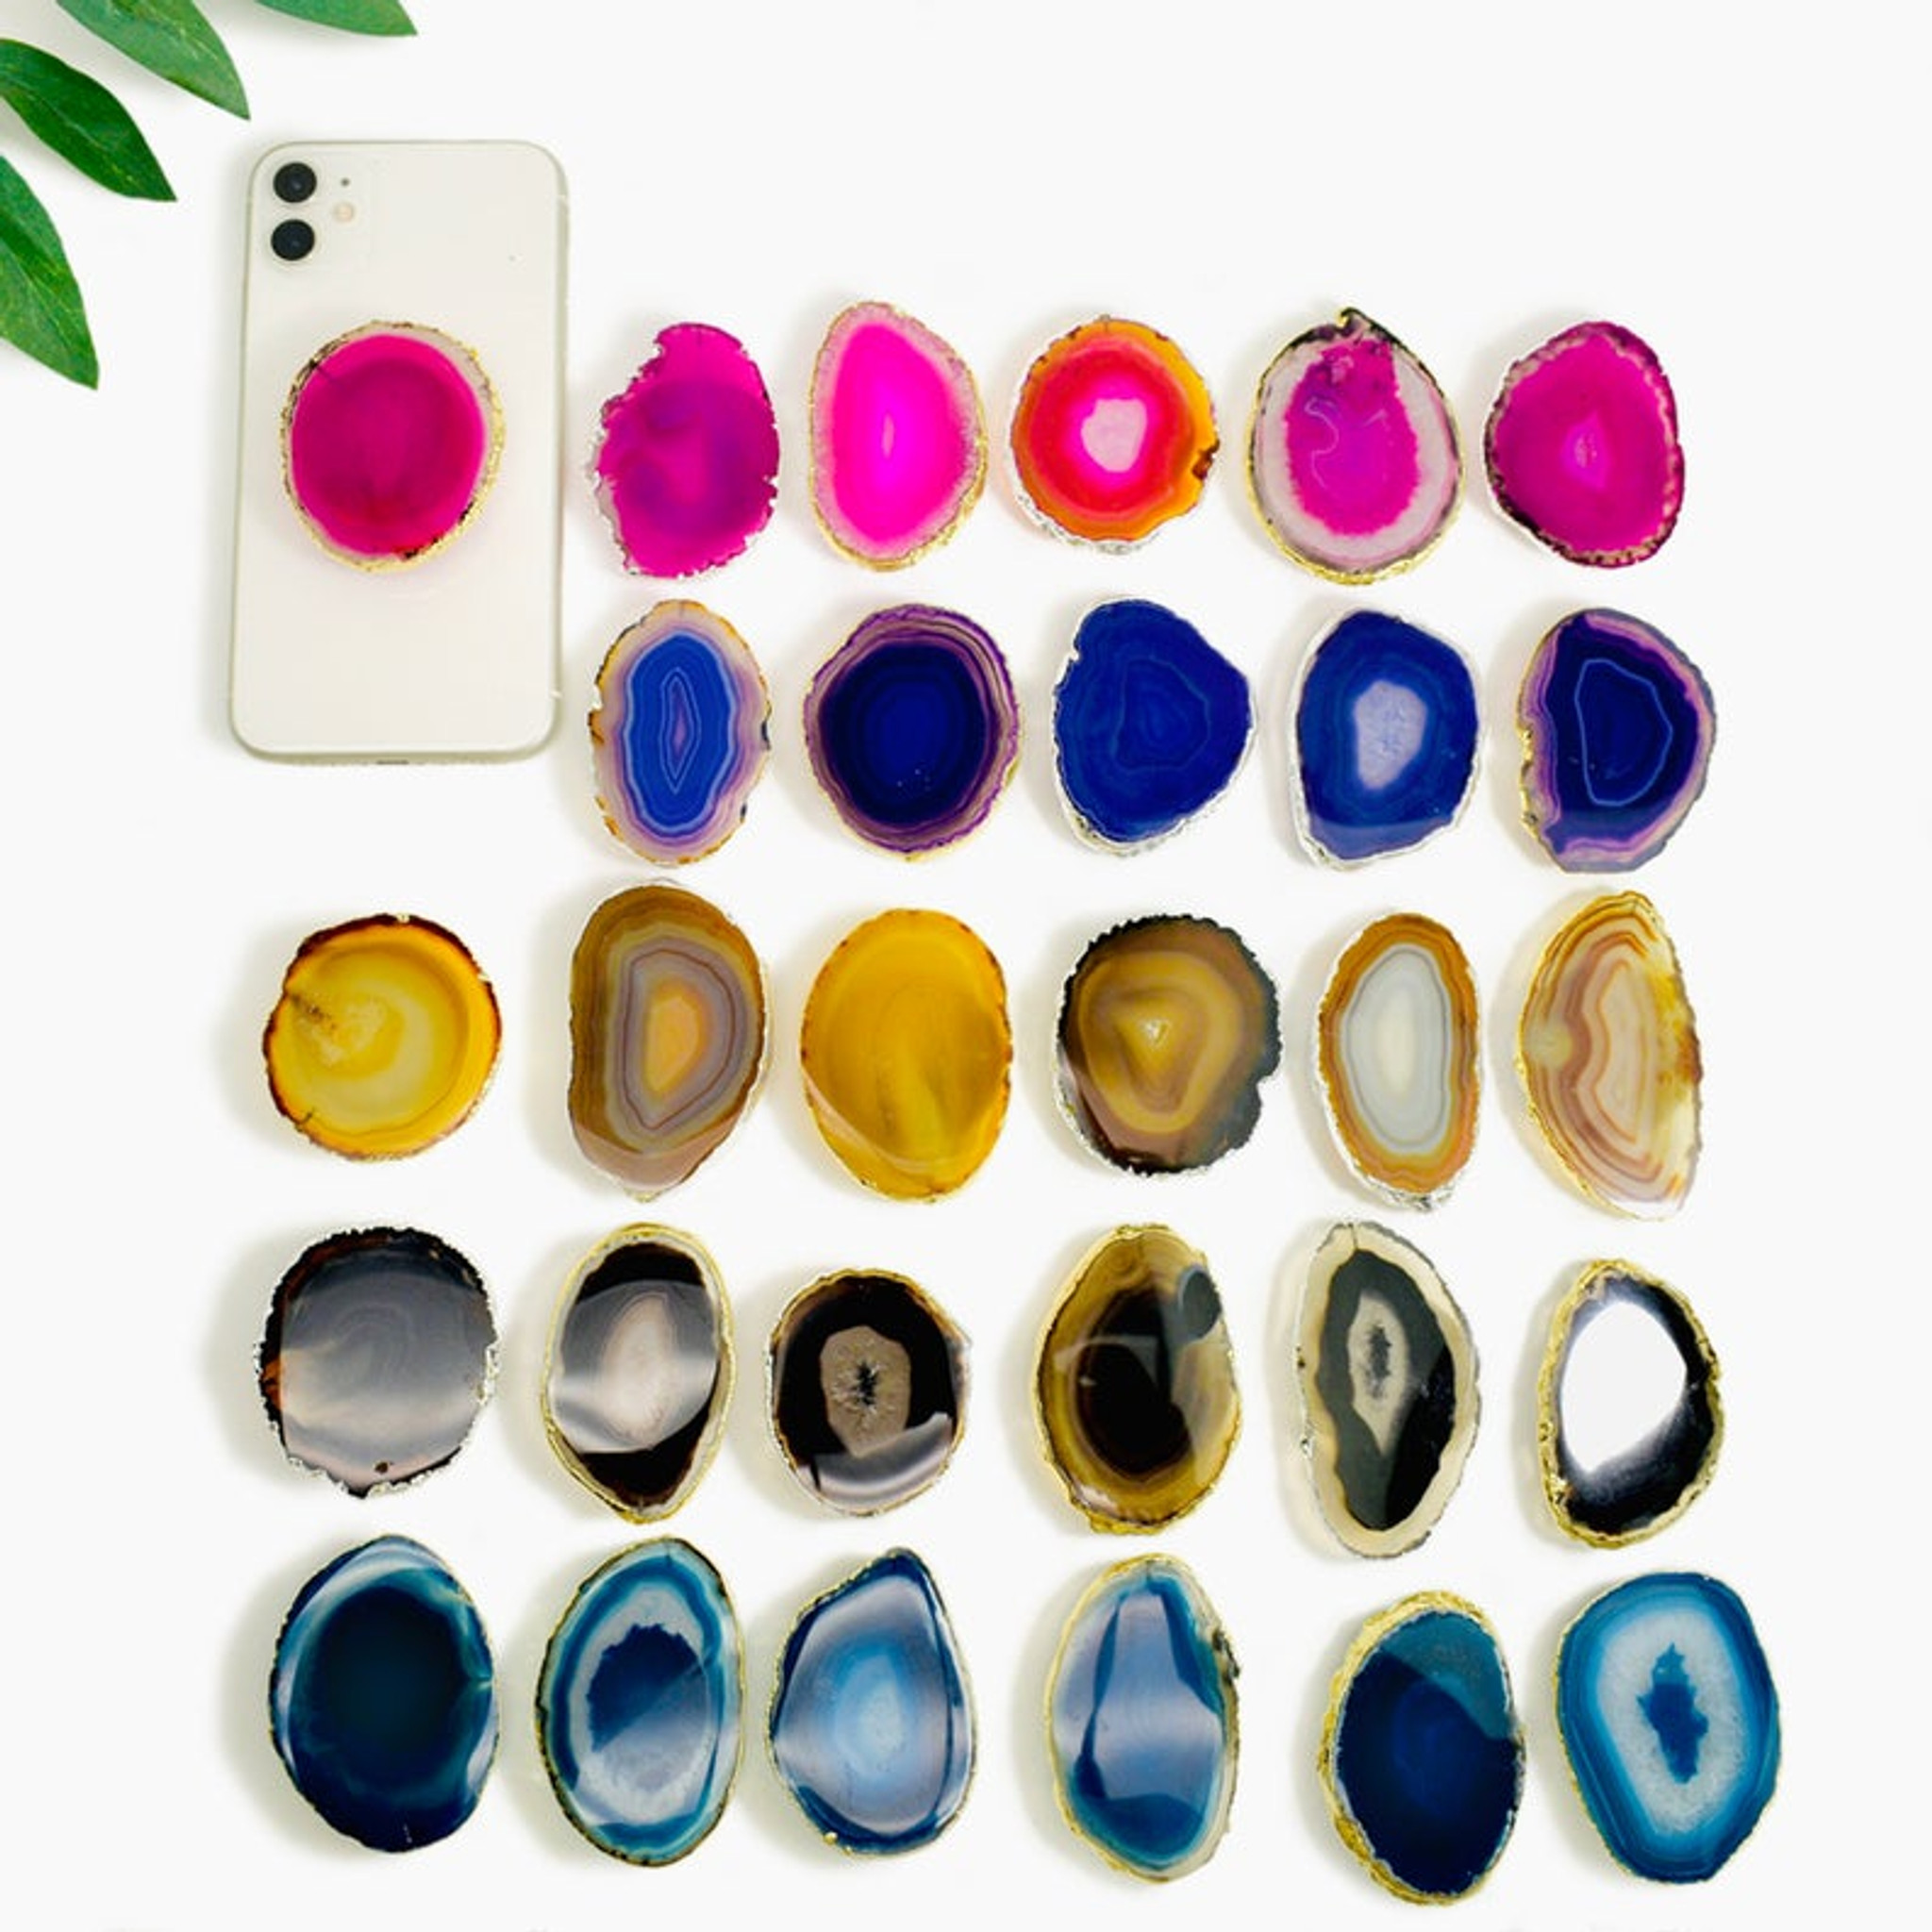 Color Agate Crystal Cell Phone Grip, Color Options kids teen holder